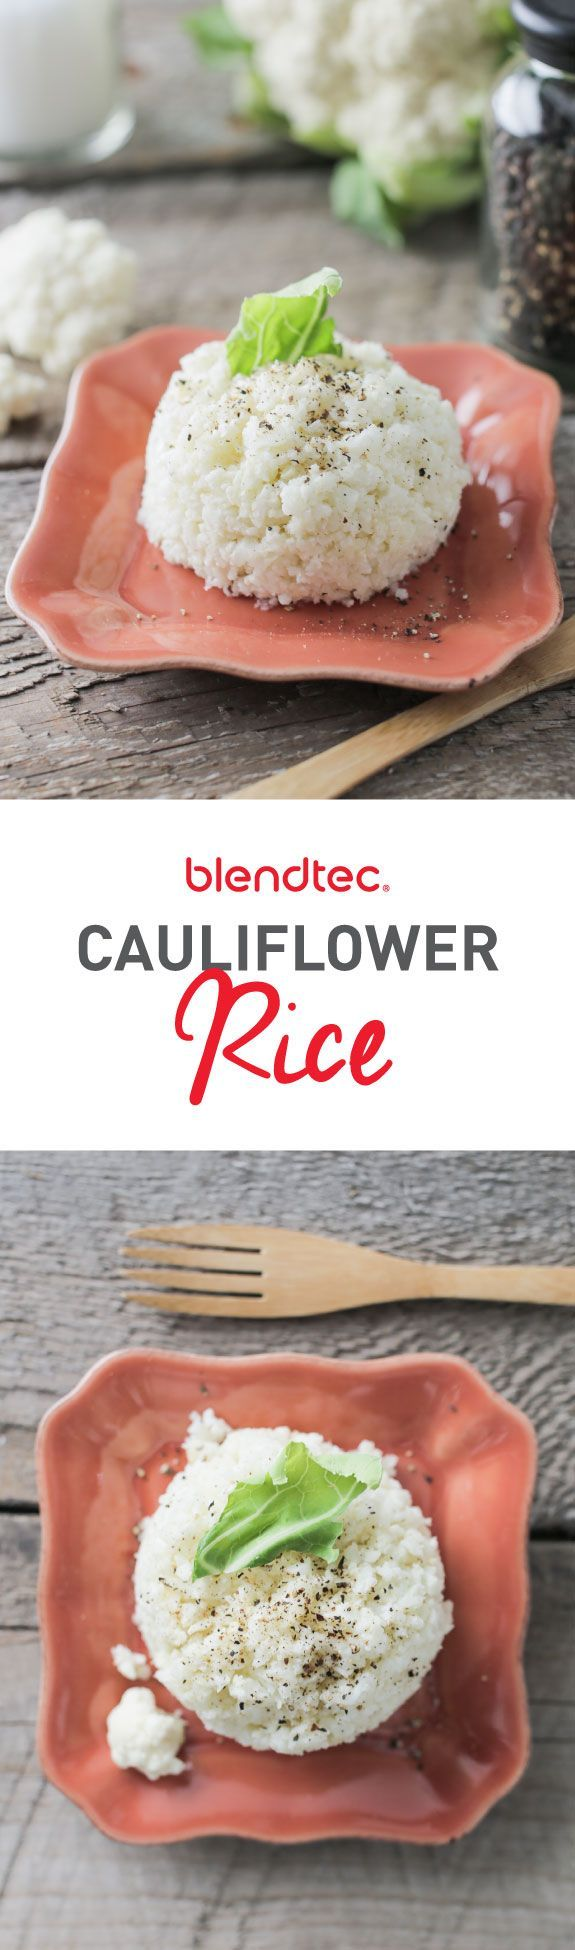 """Cauliflower """"rice"""" is a great low-carb, paleo-friendly substitution for rice in your favorite recipes. It's a great recipe for many nutrition plans and diets (like #Whole30) and is SO EASY to make with the help of your Blendtec!"""